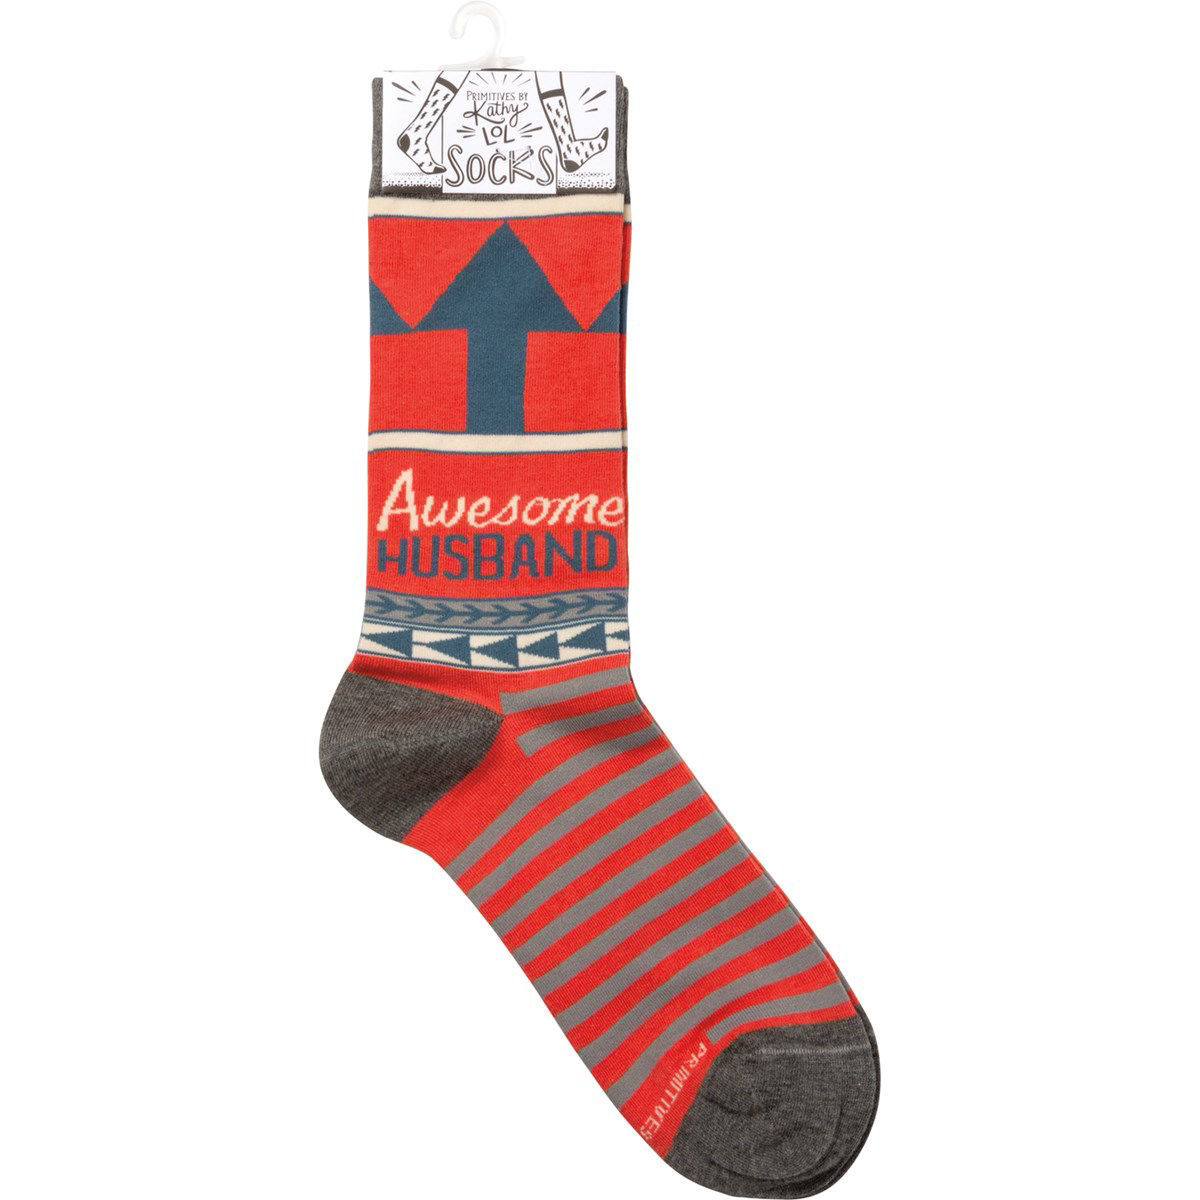 Awesome Husband Socks by Primitives by Kathy